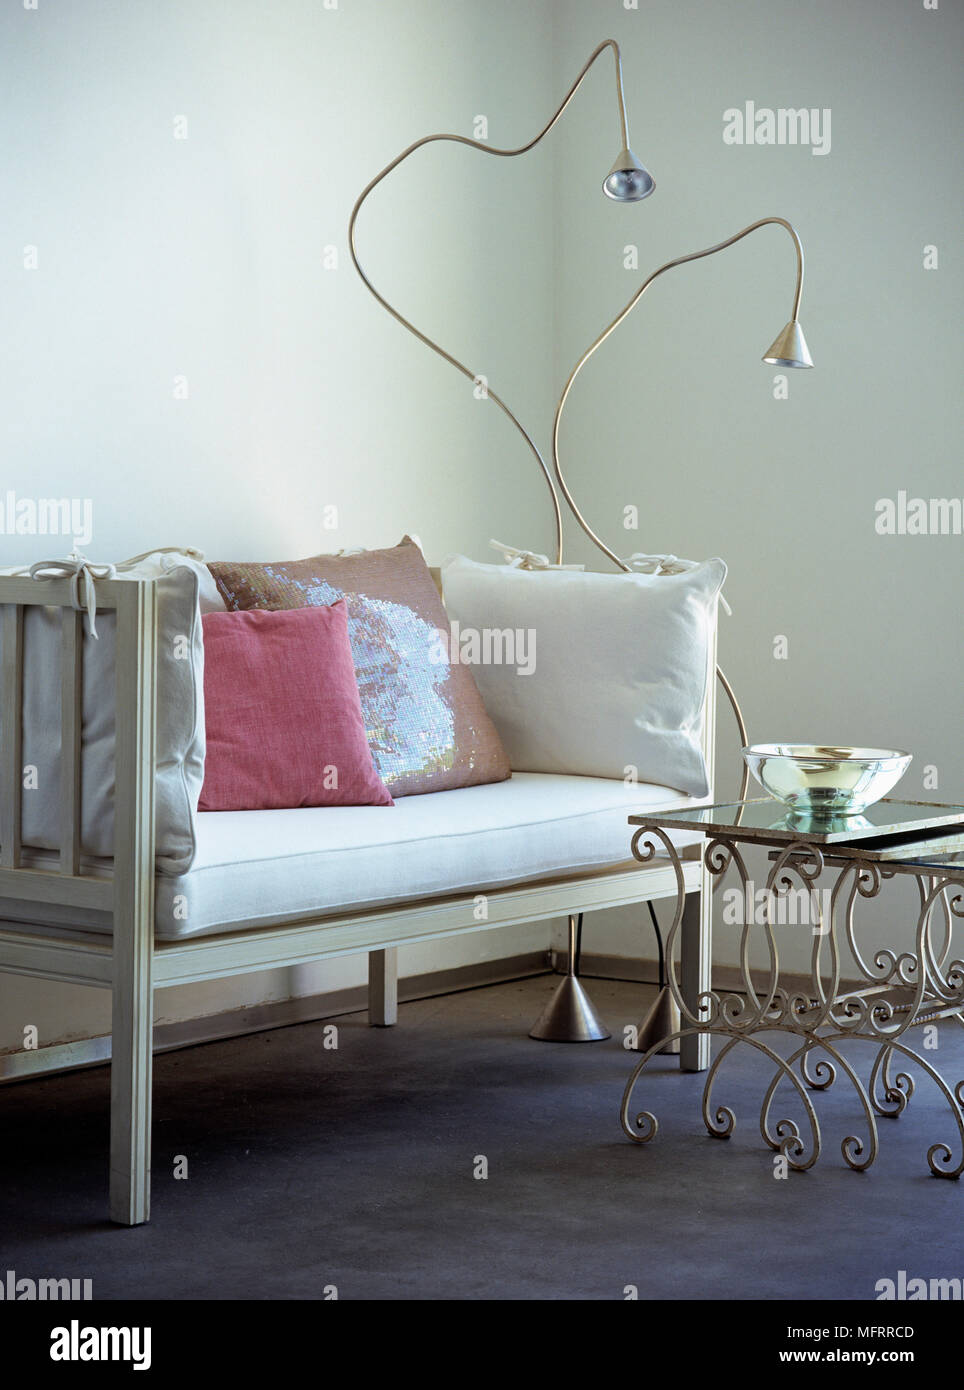 Modern Floor Lamps Next To White Wood Sofa In Corner Of Room